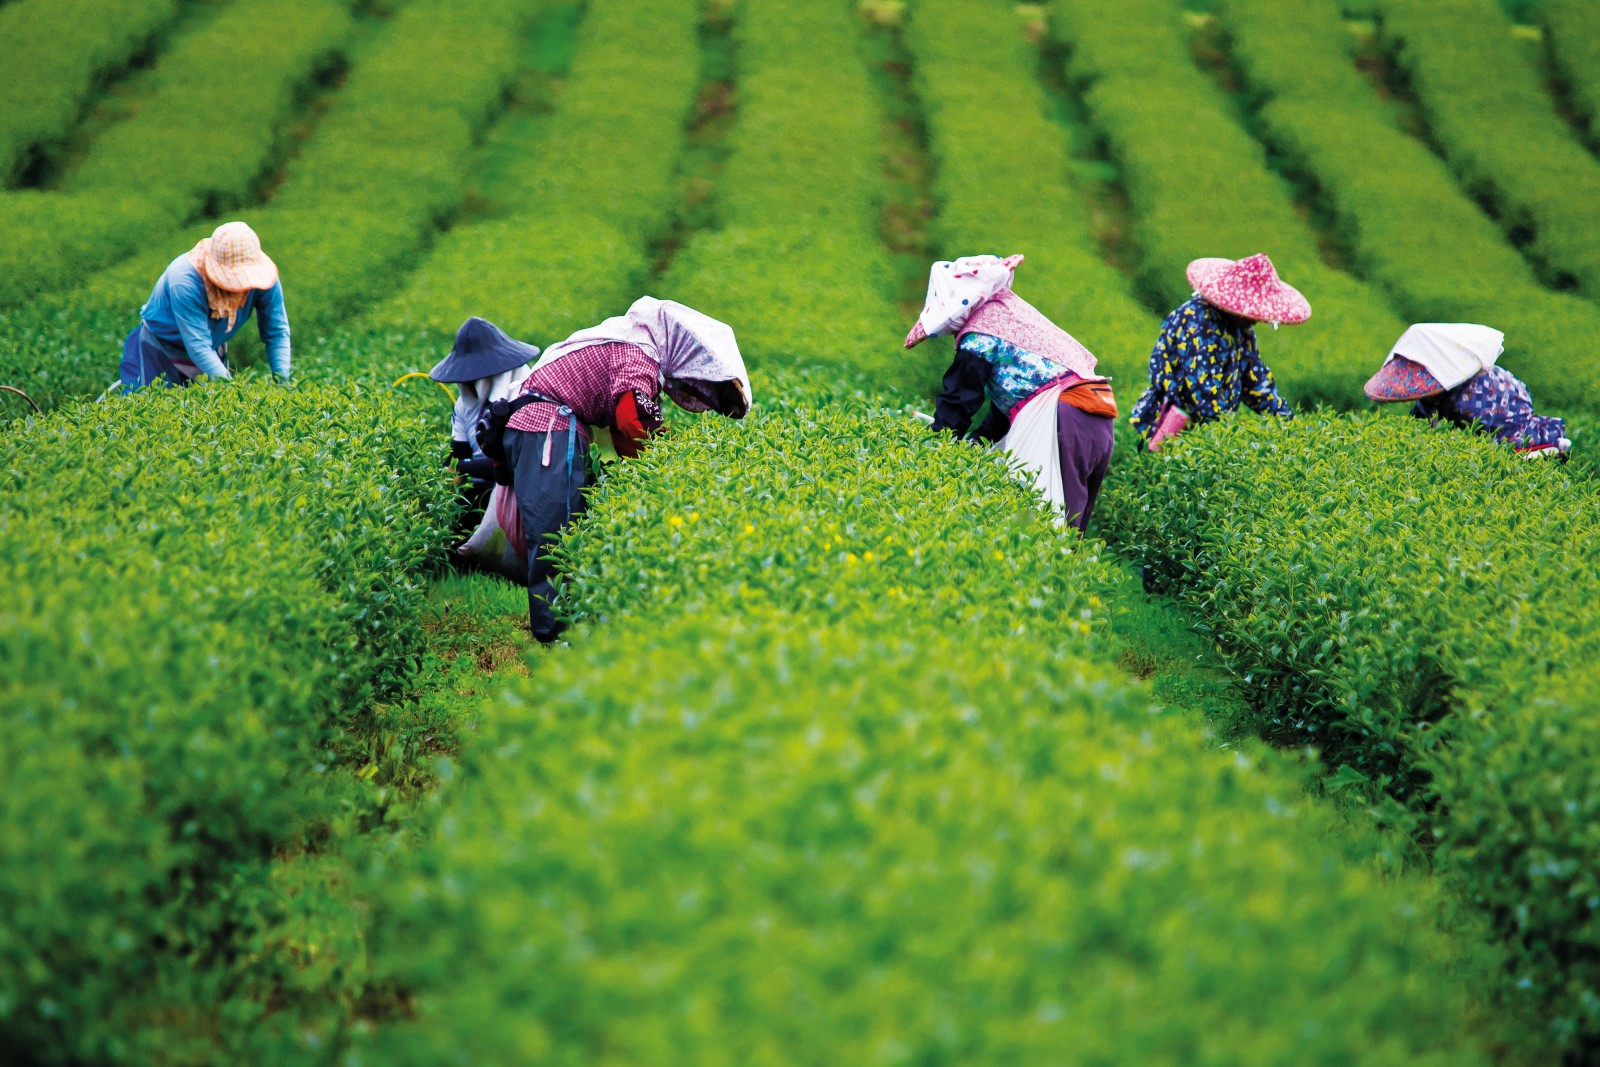 It's easy to feel transported to the hills of Taipei by visions of tea-pickers working neat rows of Camellia sinensis, but this scene plays in reverse—professional tea pickers travel from Taiwan to work this plantation on the outskirts of Hamilton, a location better known as a capital of New Zealand's dairy industry. Images such as this might become more common as local producers harvest the export potential of the crop.